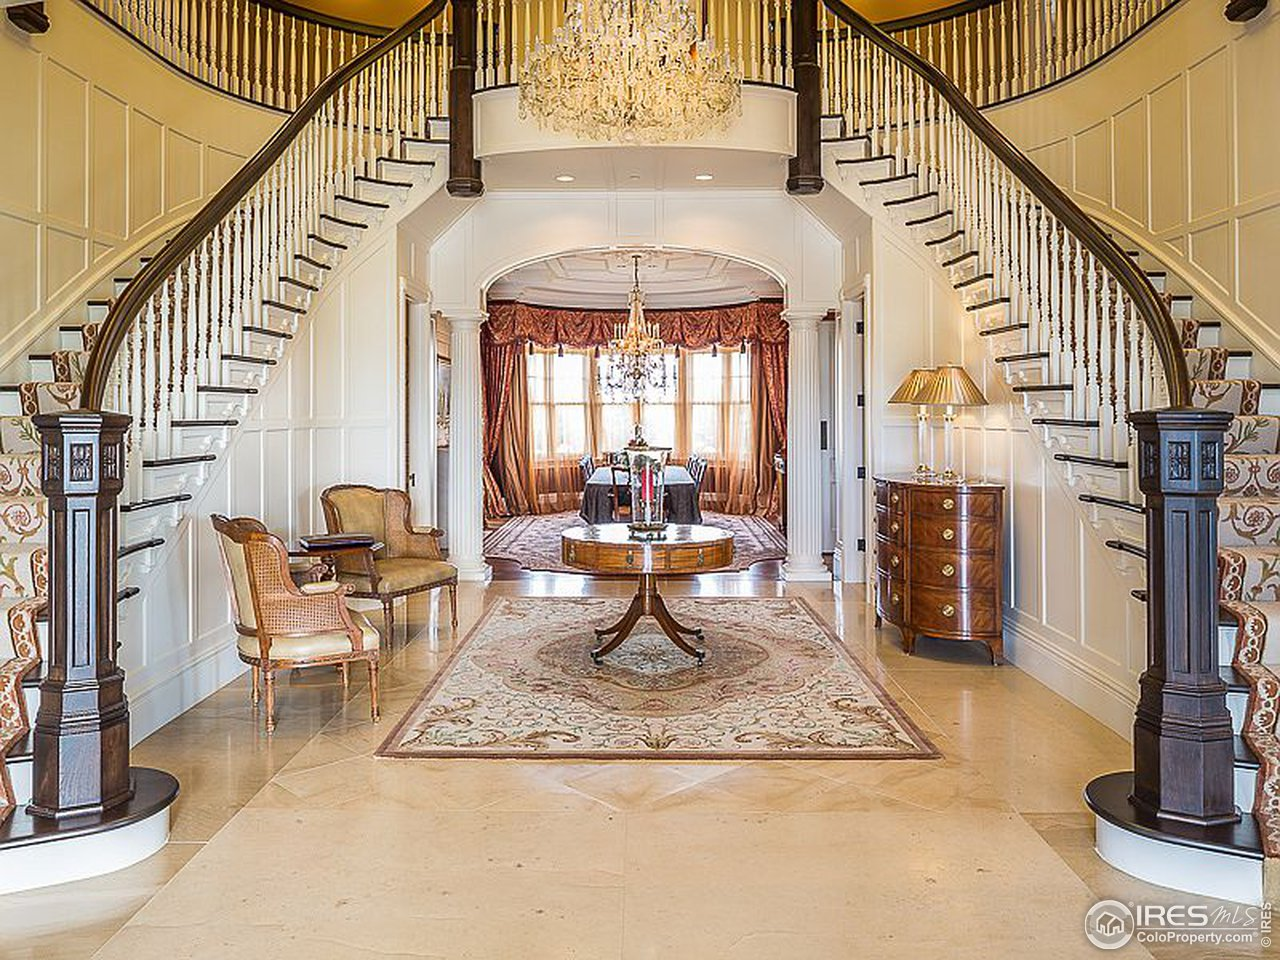 Luxury estate for entertaining and generational gatherings.